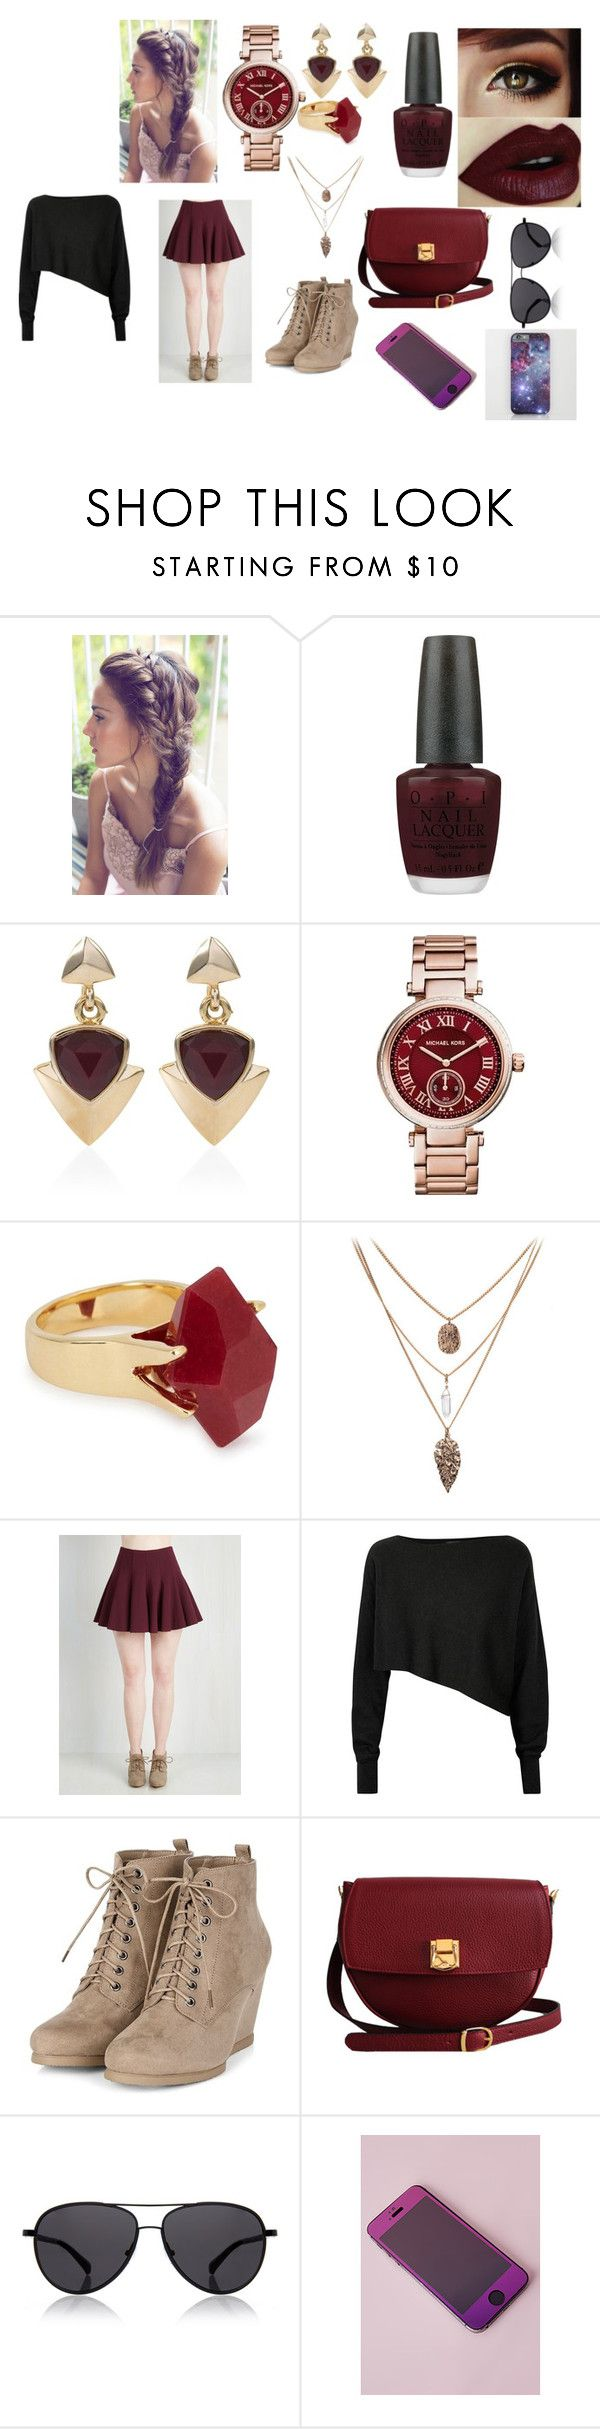 """burgundy all da way"" by courtneyn-i on Polyvore featuring OPI, White House Black Market, Michael Kors, Lola Rose, Crea Concept, The Code, The Row and Missguided"